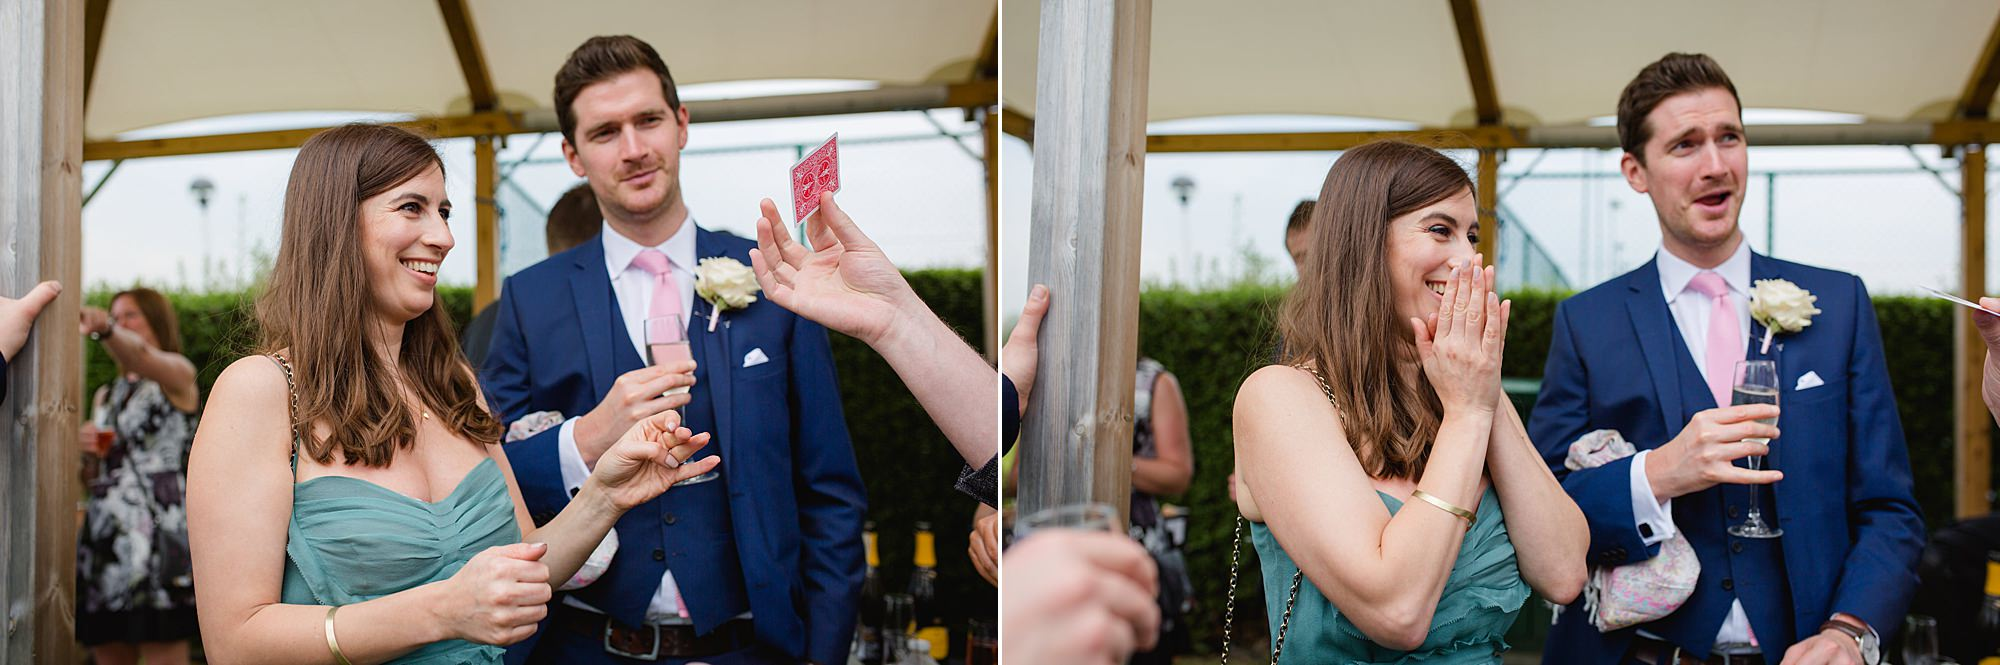 Bank of England Sports Centre wedding guests enjoying magic tricks